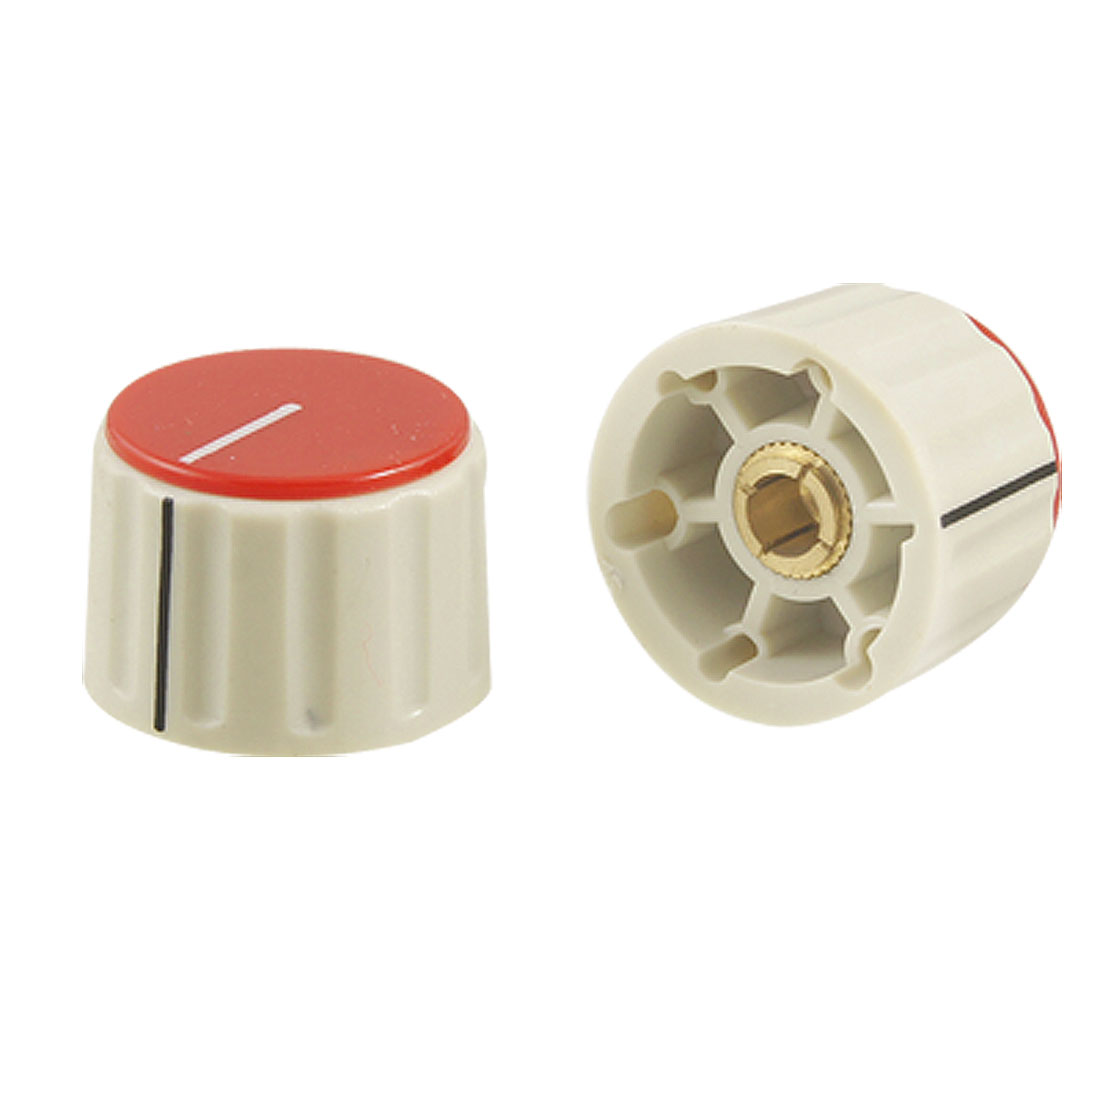 6 Pcs Red Gray Plastic 360 Degree Rotary Switch Turning Knobs